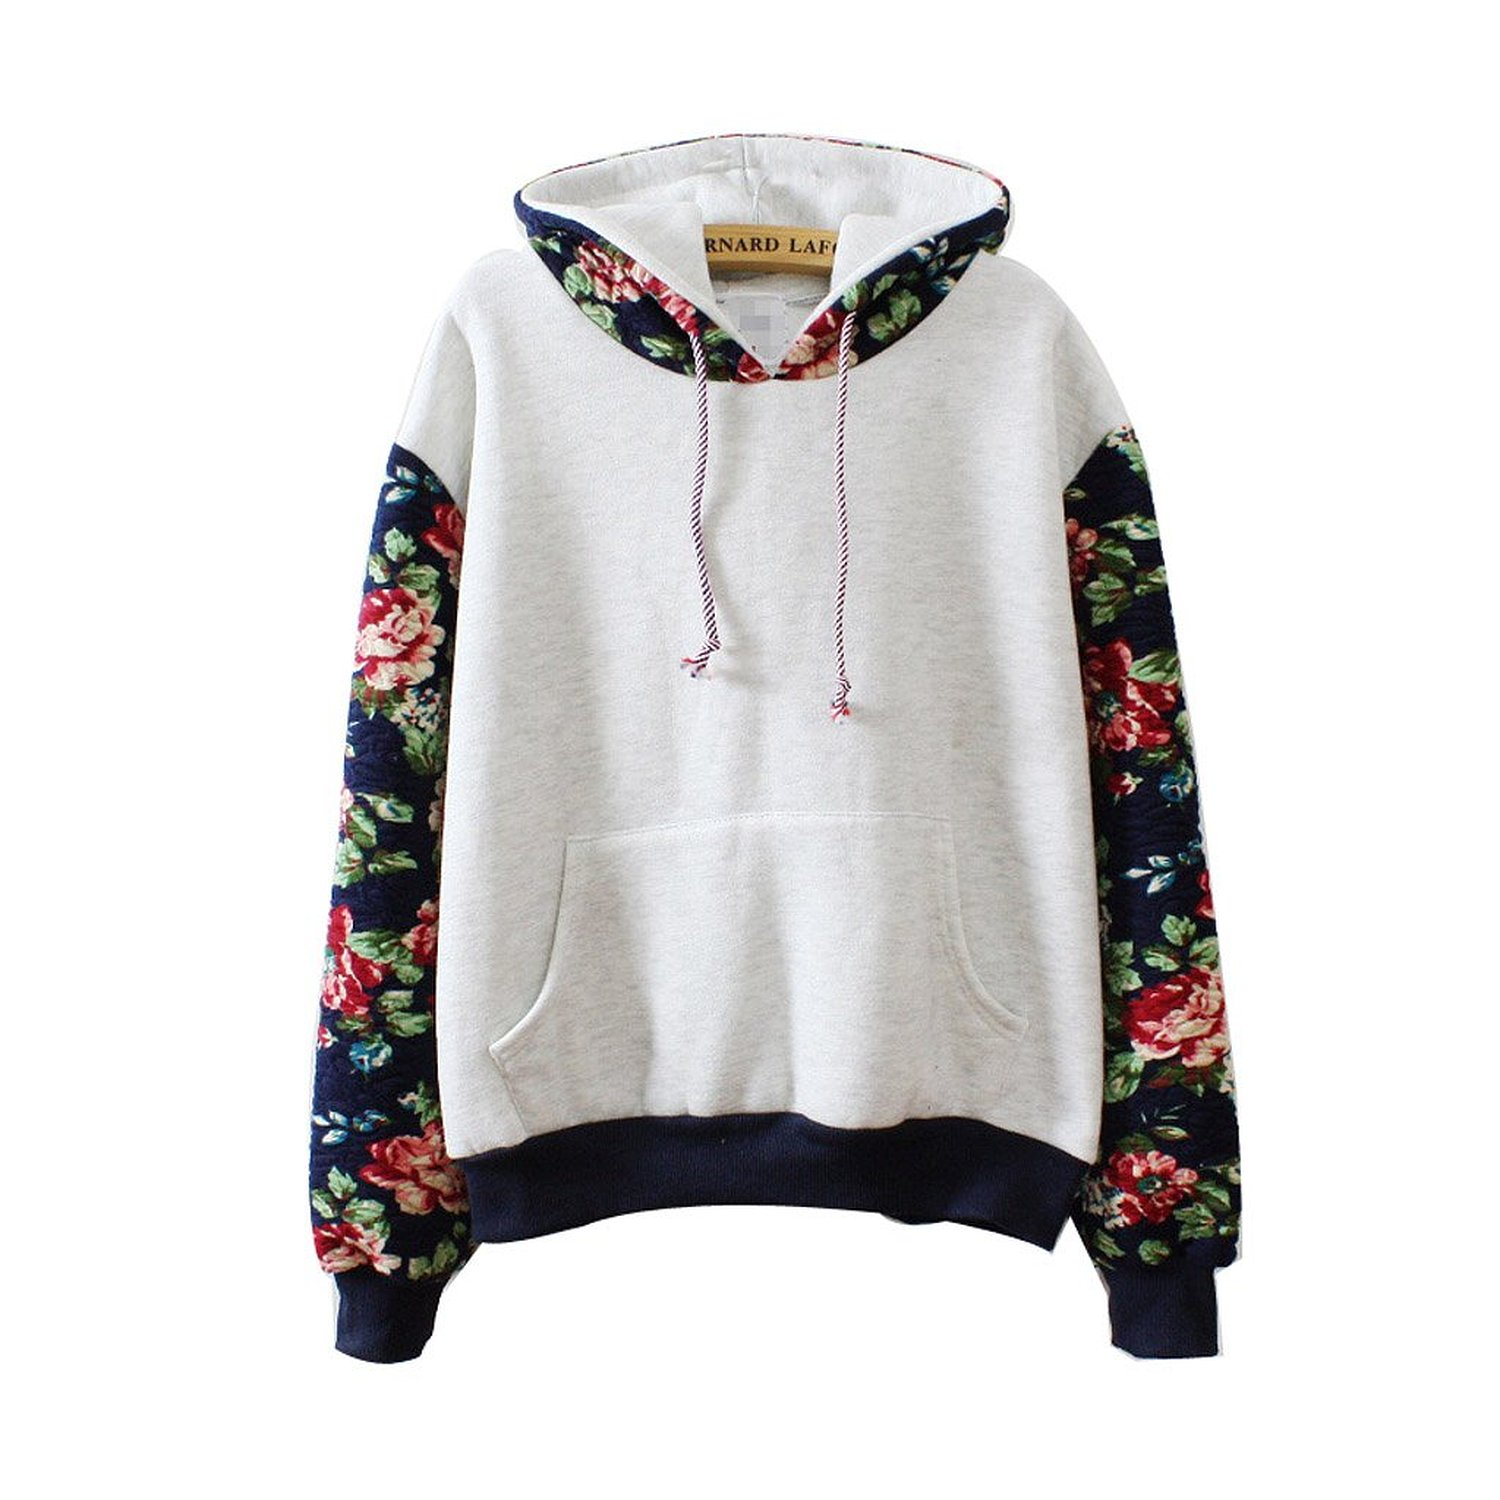 7fa588ecefd Mebarra Women Thick Warm Floral Printed Long Sleeve Hooded Pullover  Sweatshirt (Gray) at Amazon Women s Clothing ...